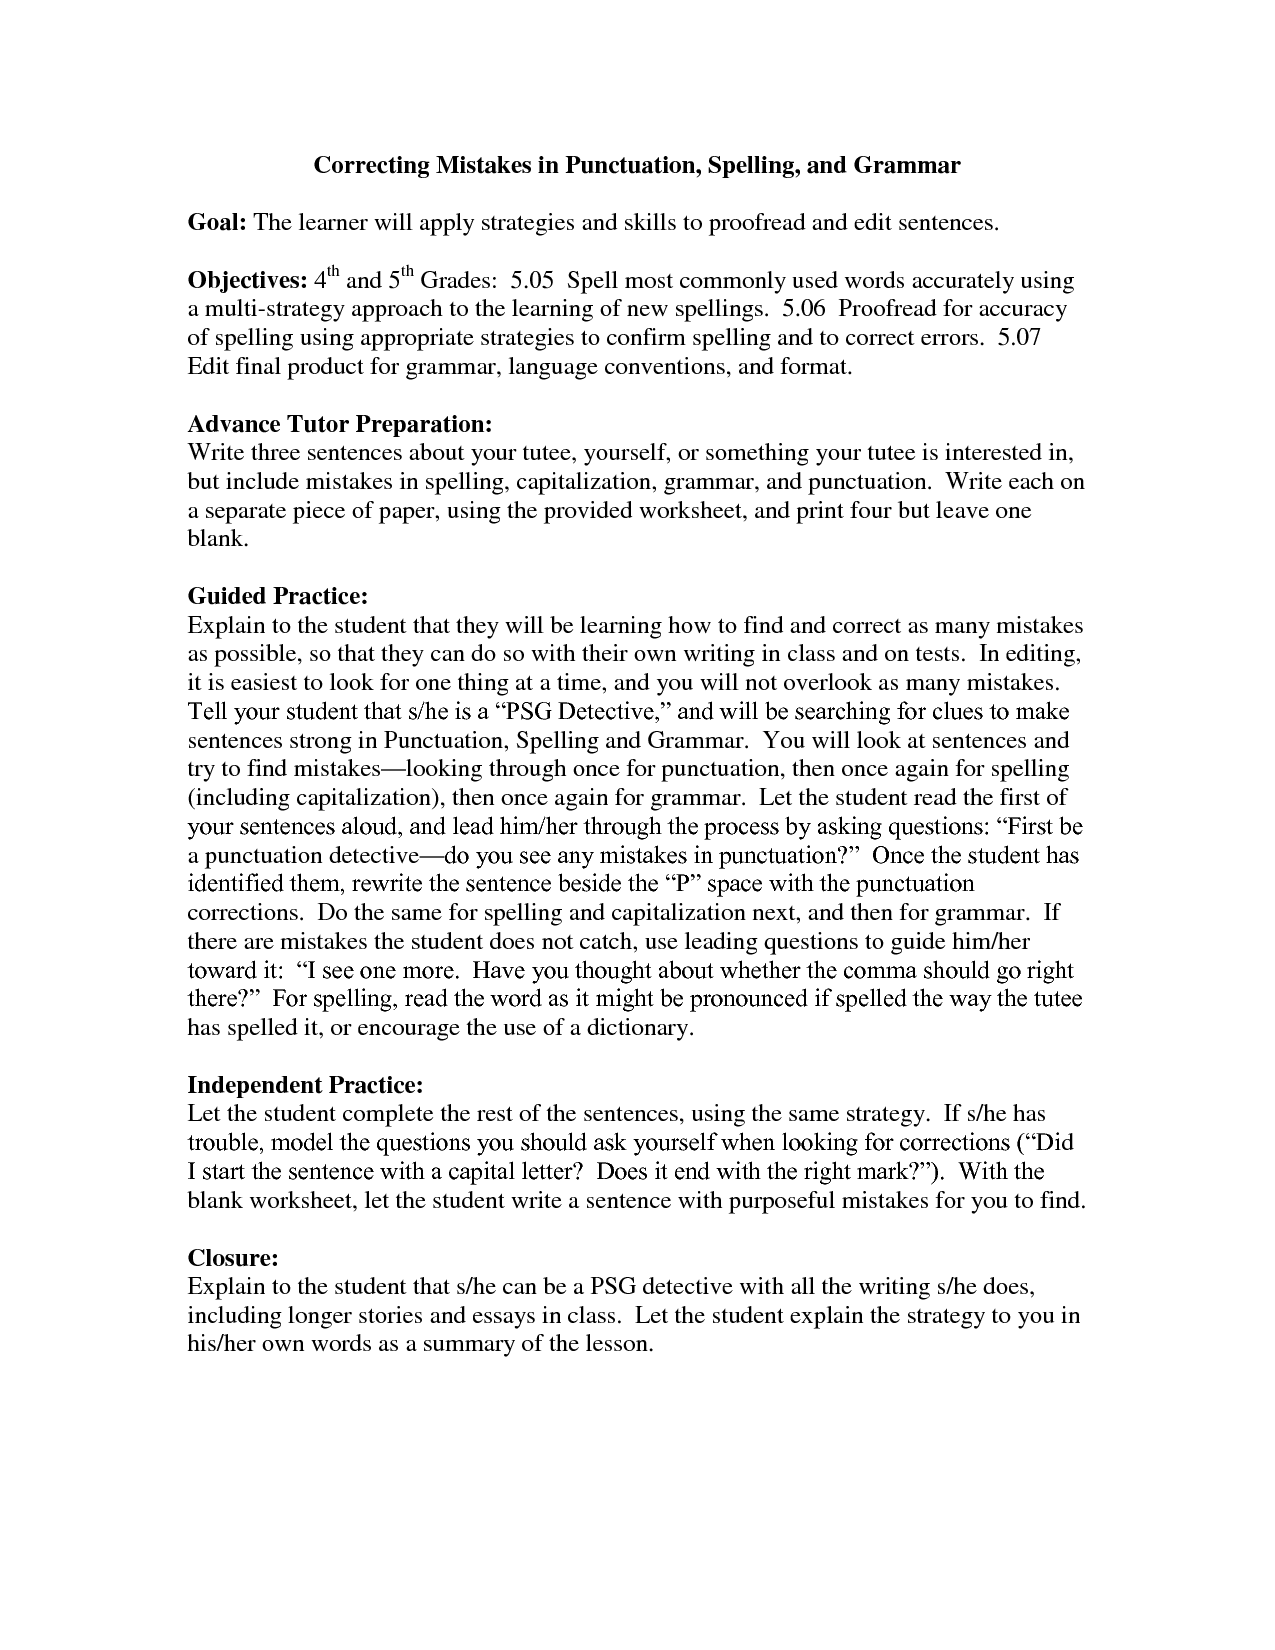 Worksheet Capitalization Worksheets 4th Grade Grass Fedjp Worksheet Study Site